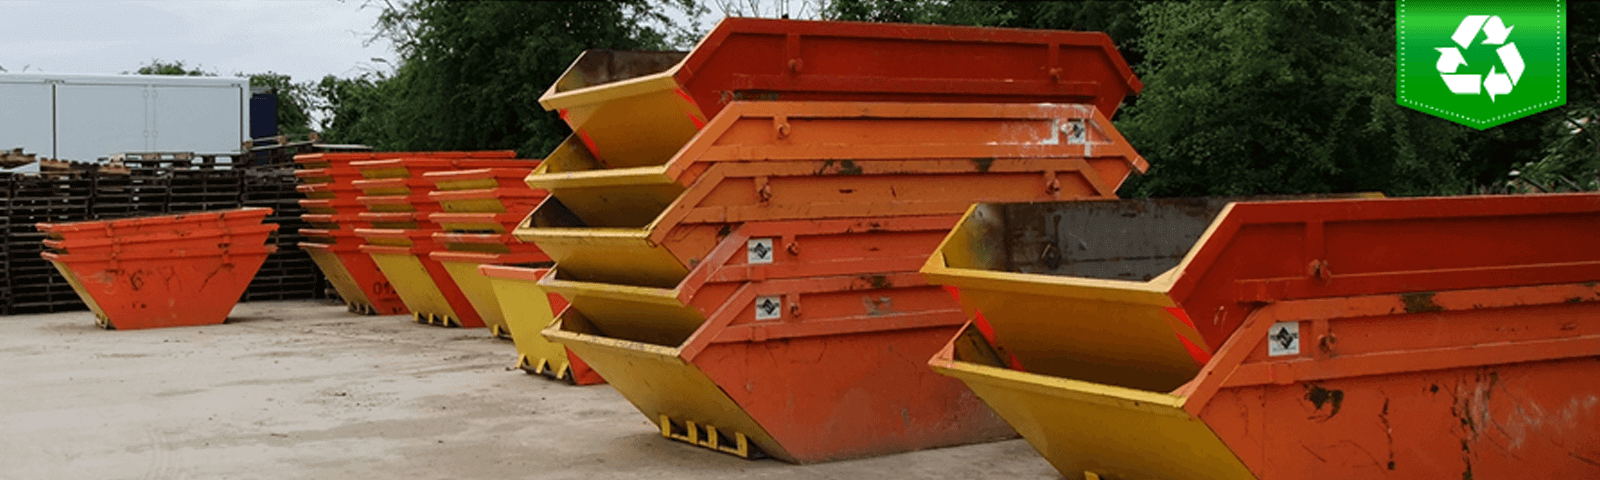 Solihull-stacked-up-skip-1-1